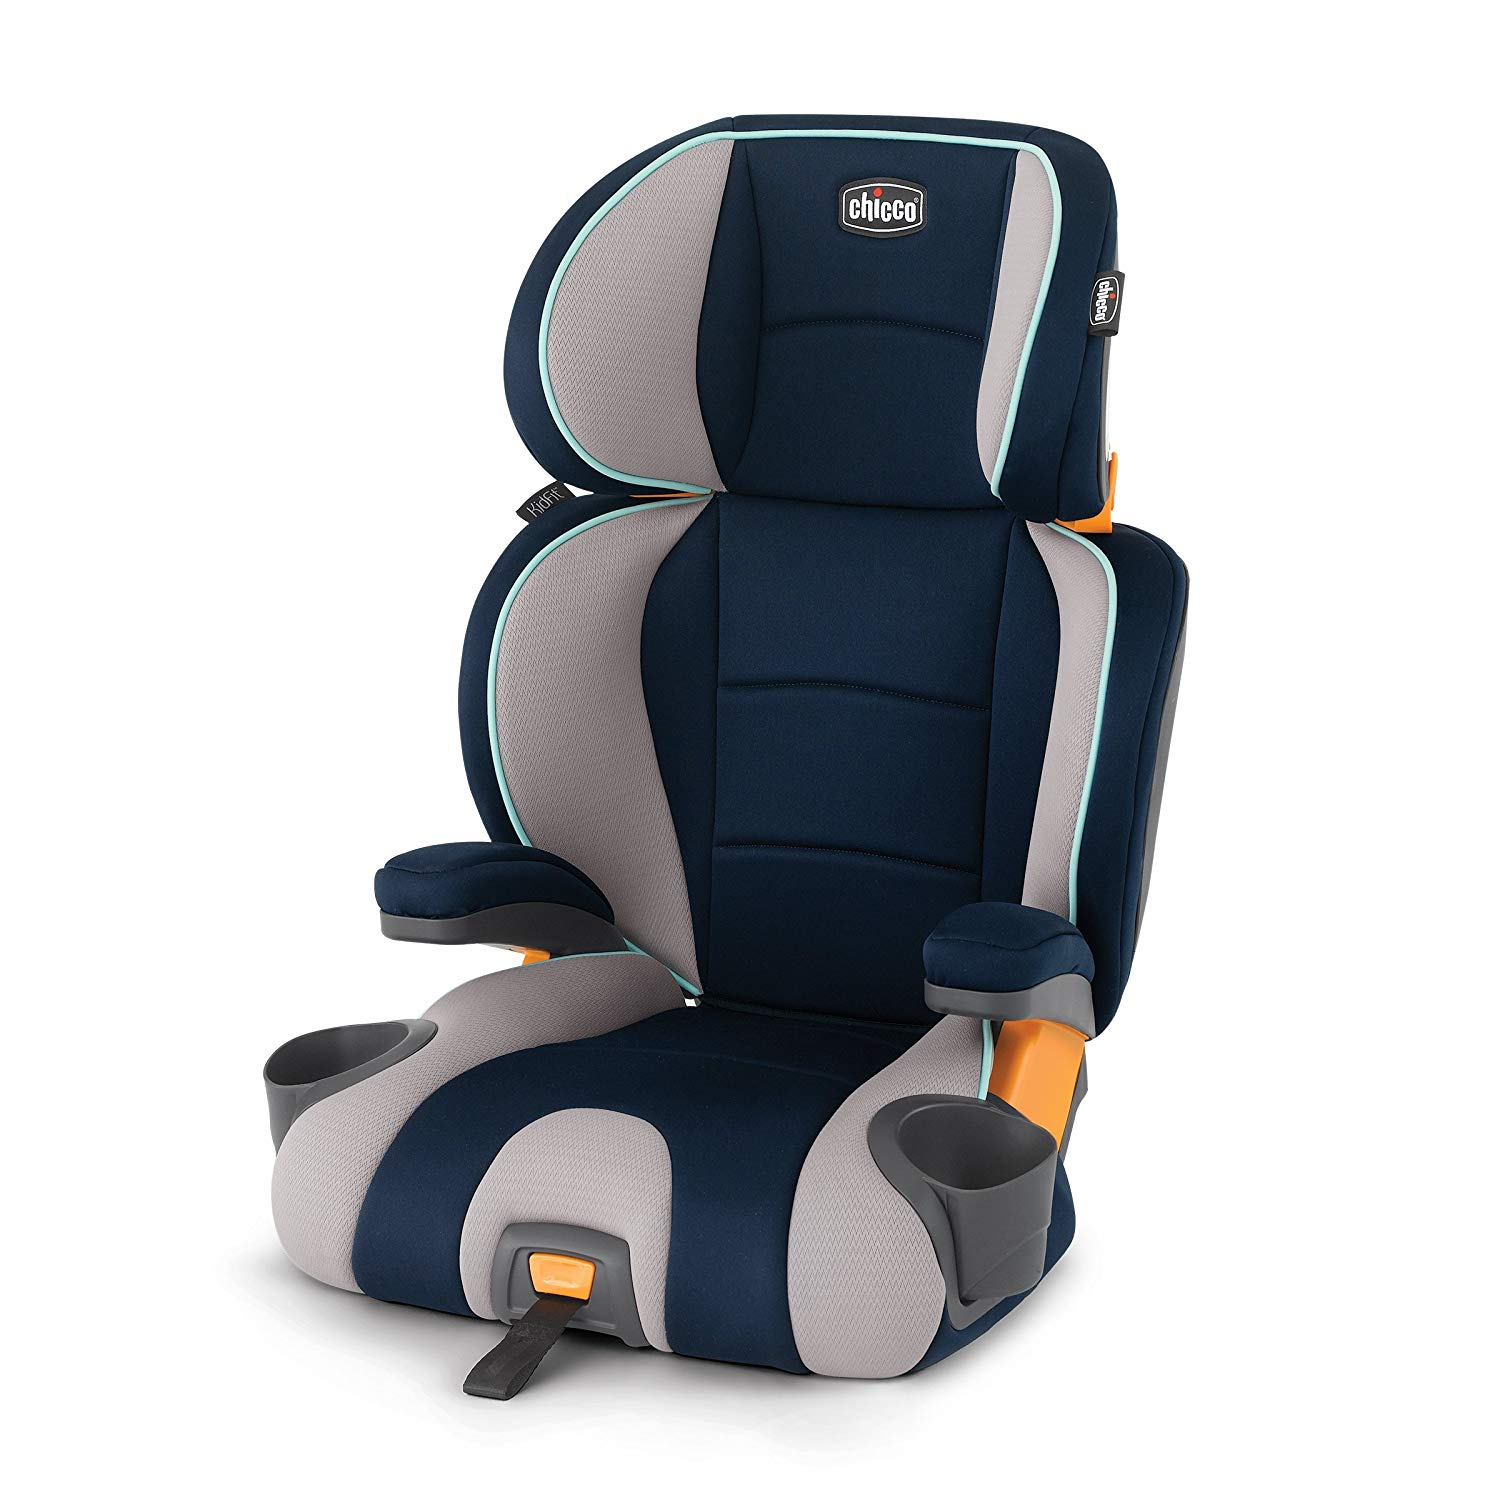 Chicco KidFit 2-in-1 Belt-Positioning Booster Car Seat